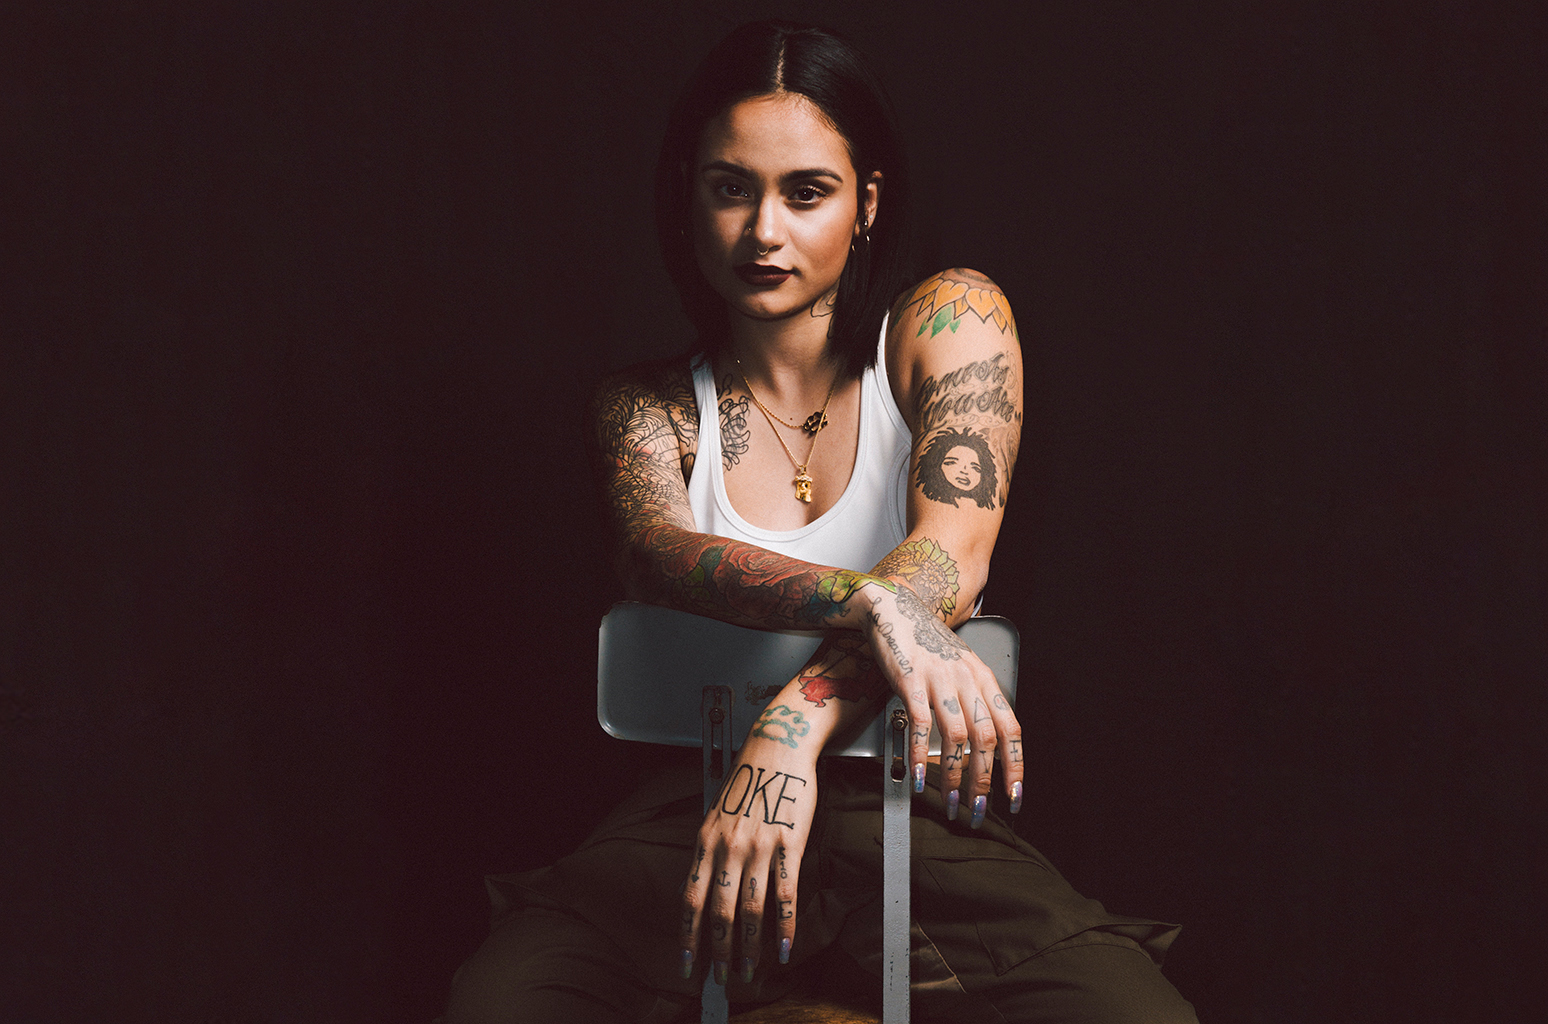 kehlani-ft-little-simz-table-music-video-the-vandallist-2